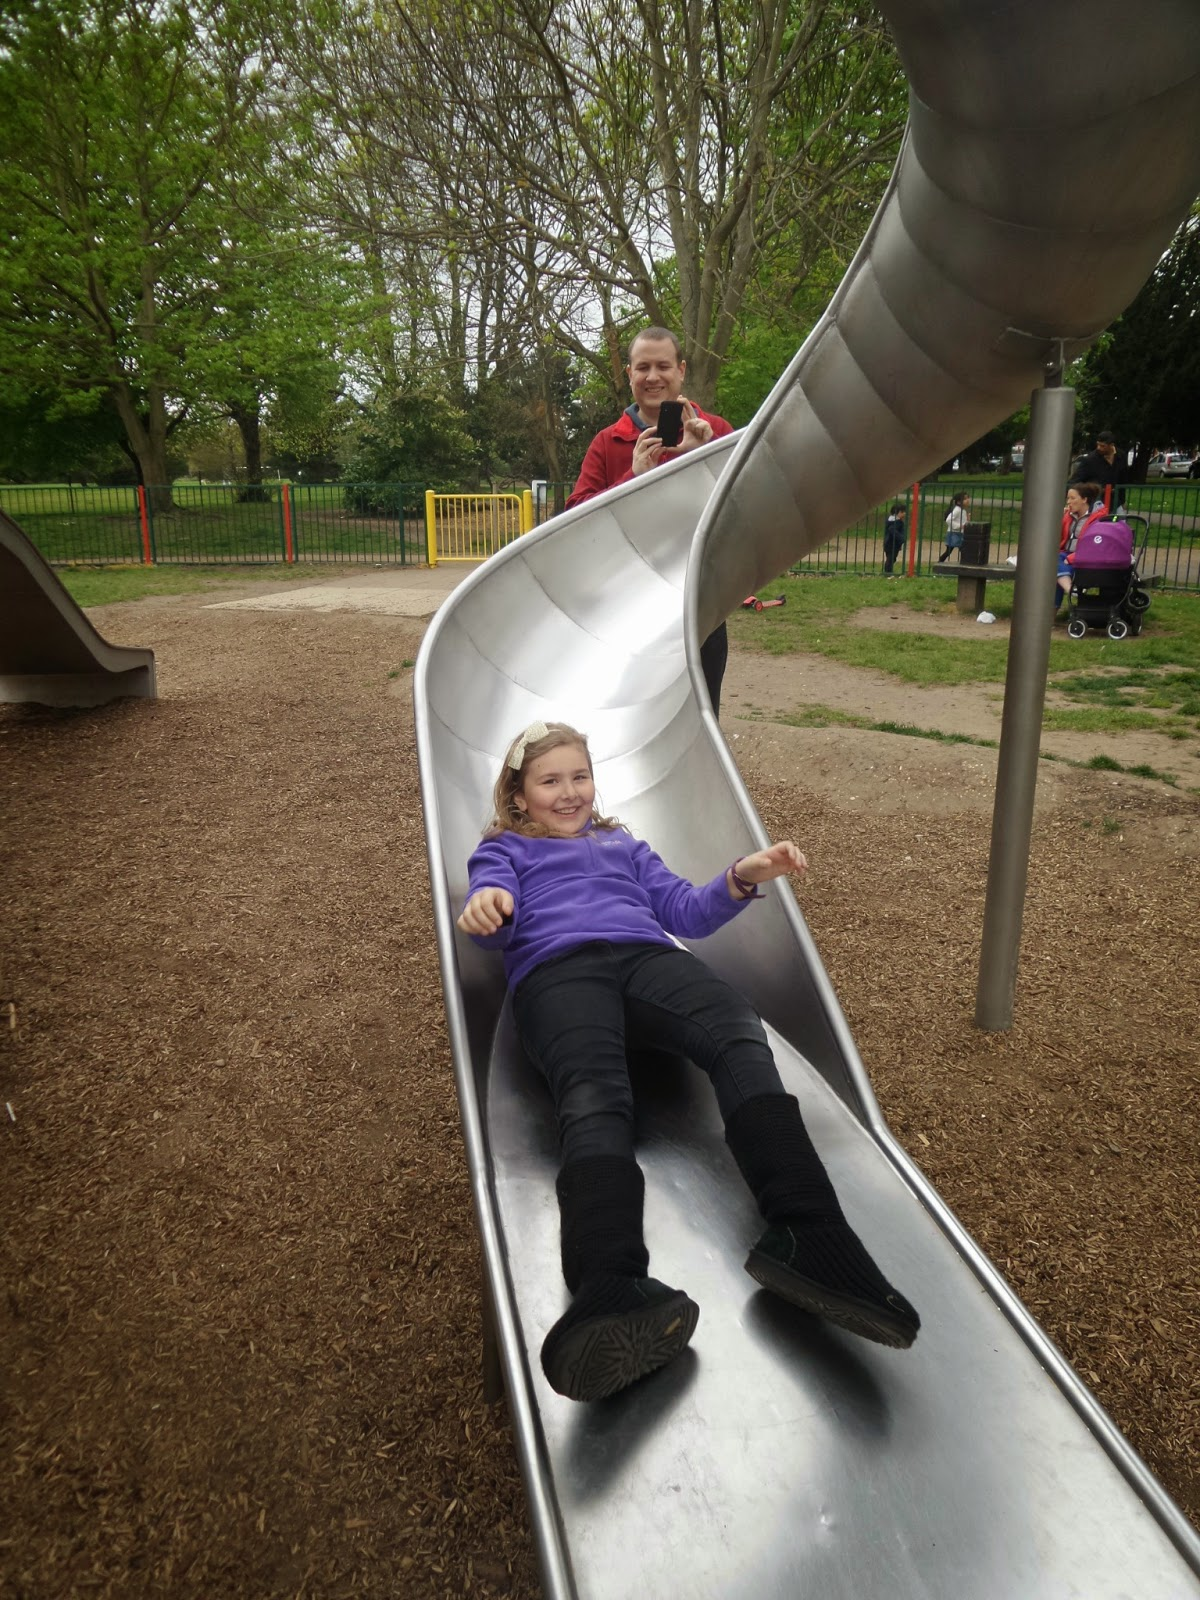 Top Ender on the Slide at Russell Park, Bedford